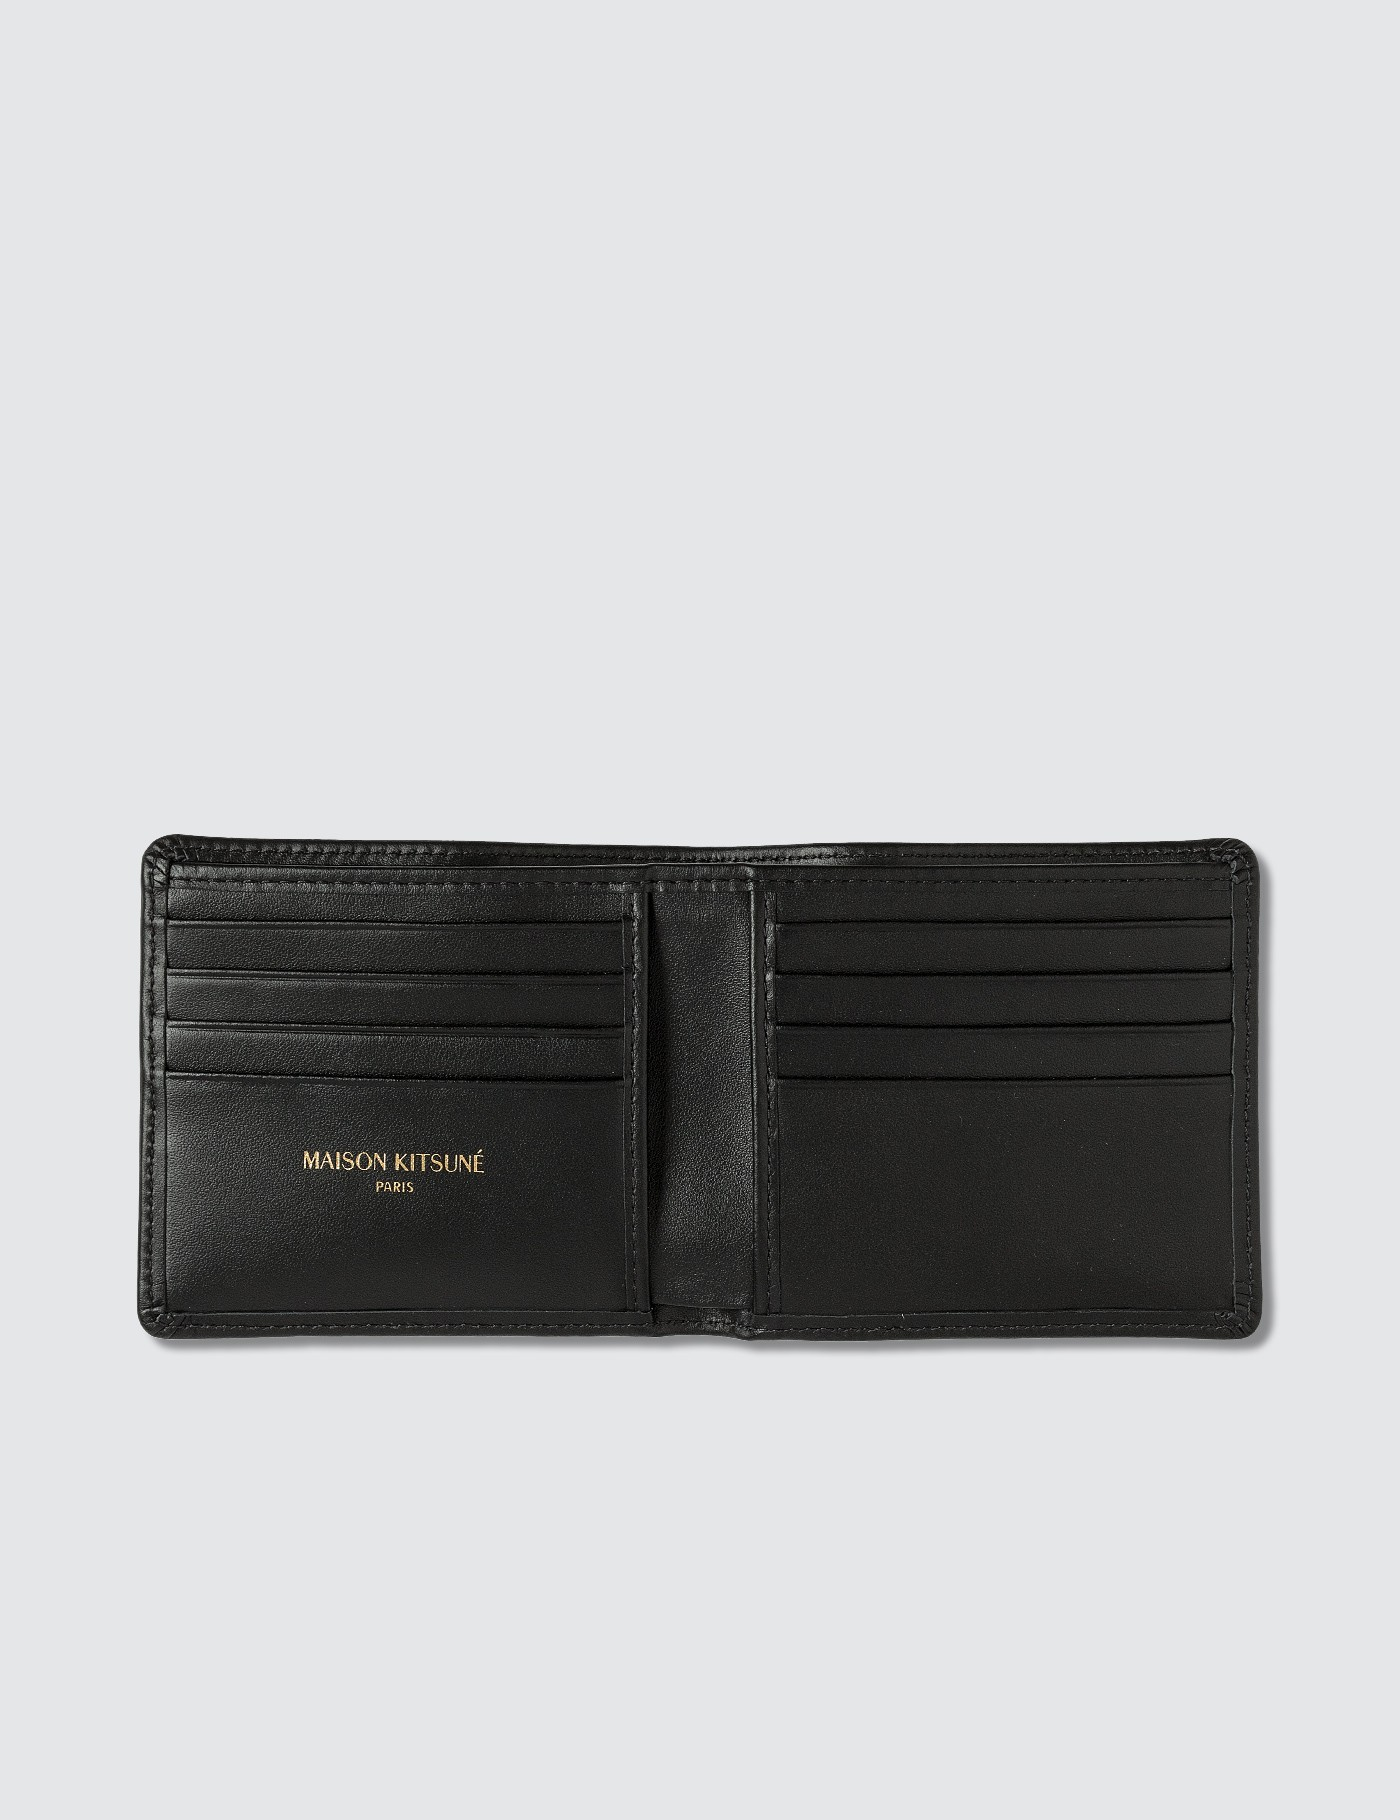 MAISON KITSUNE Tricolor Fox Leather Wallet